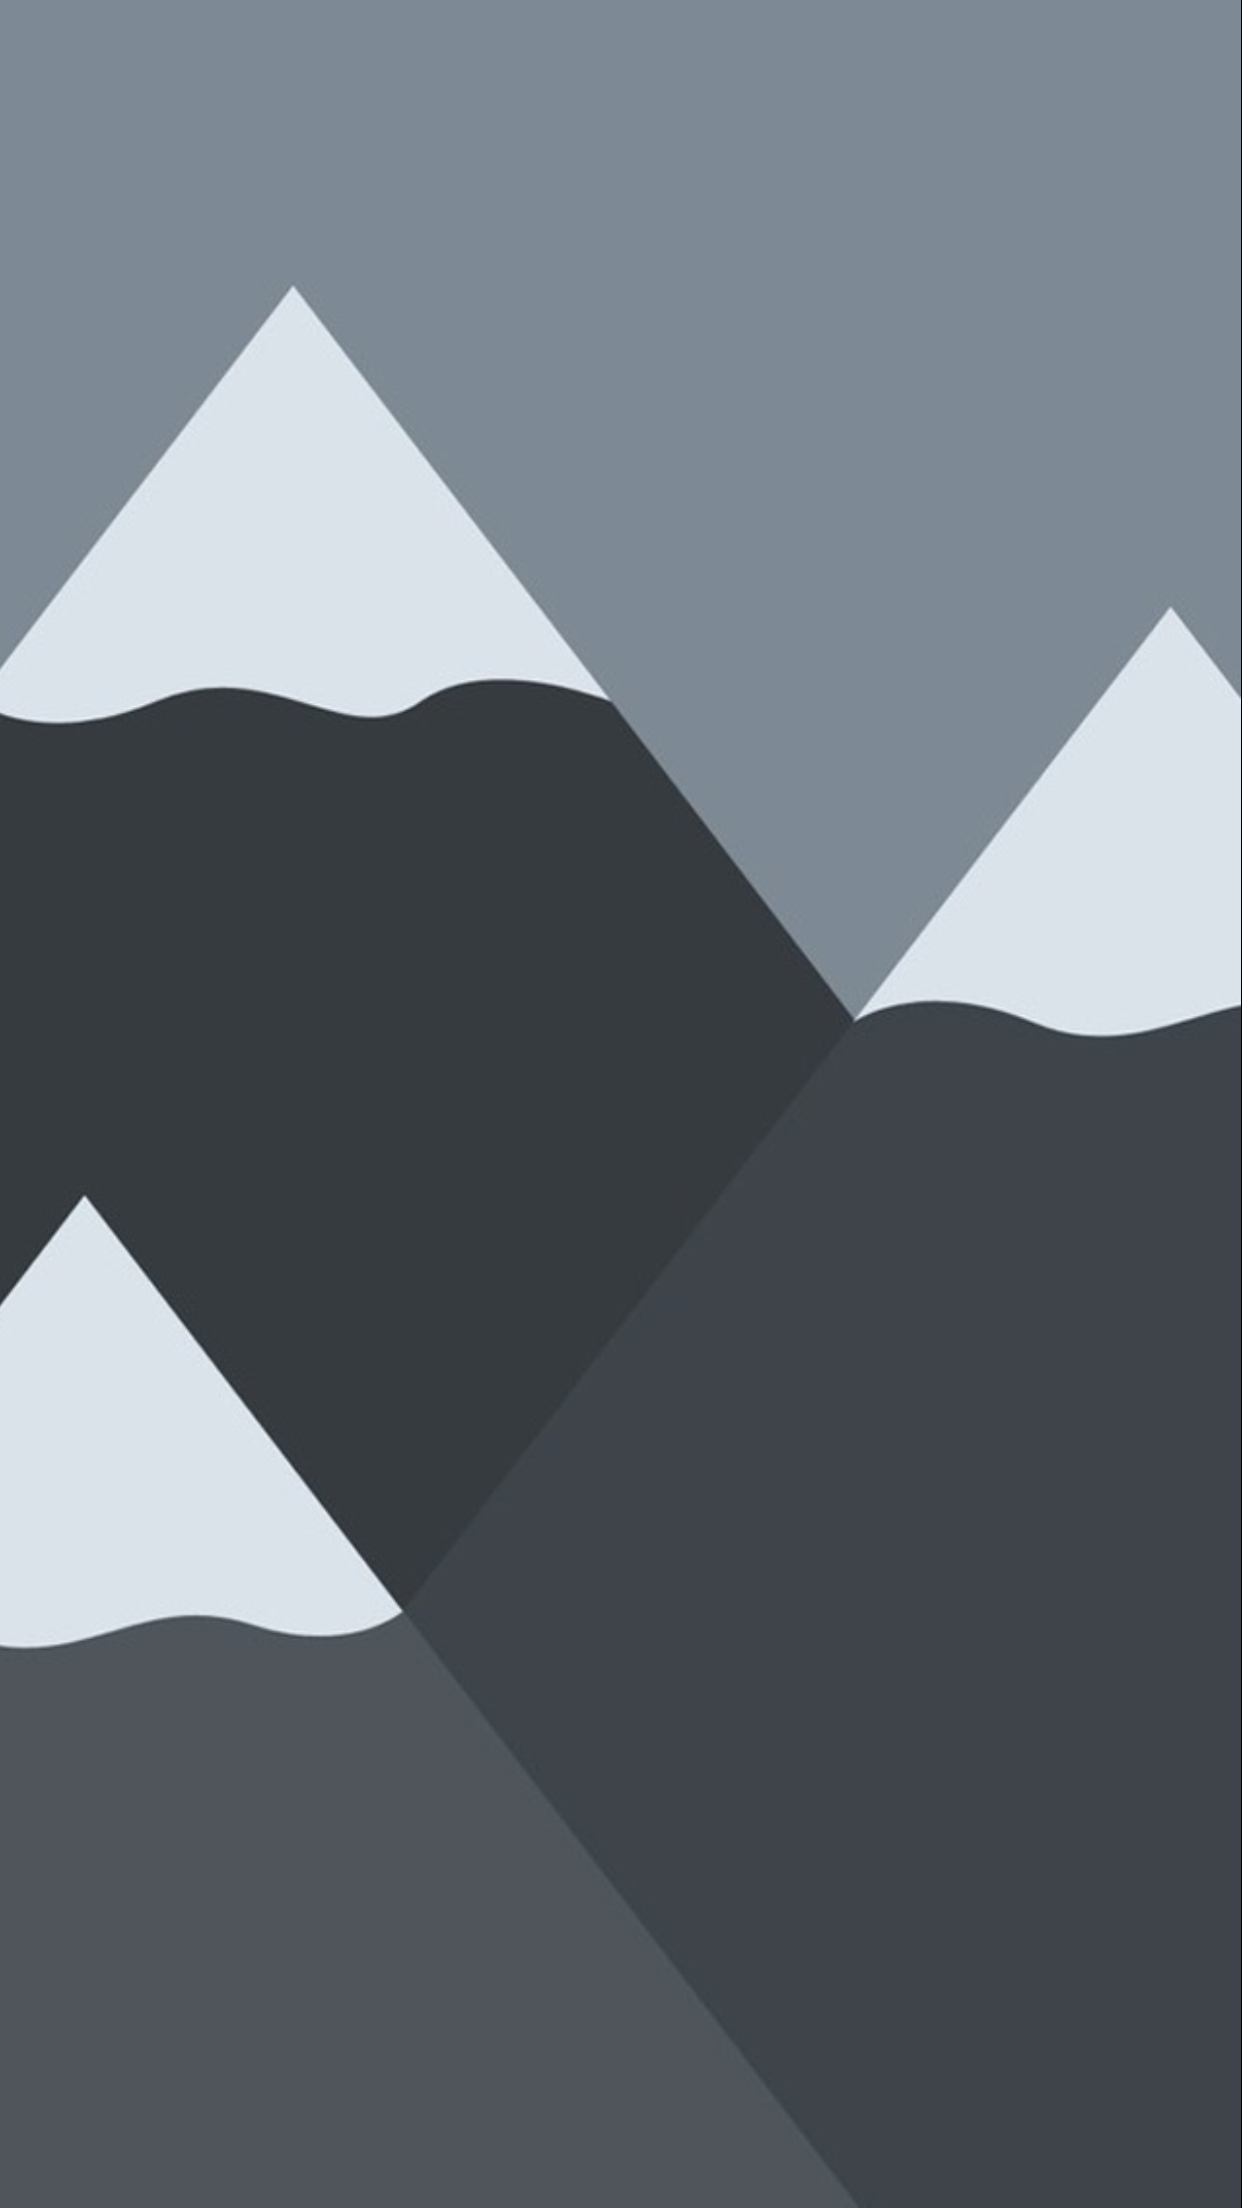 Mountains Minimal Wallpaper iPhone 6 Plus